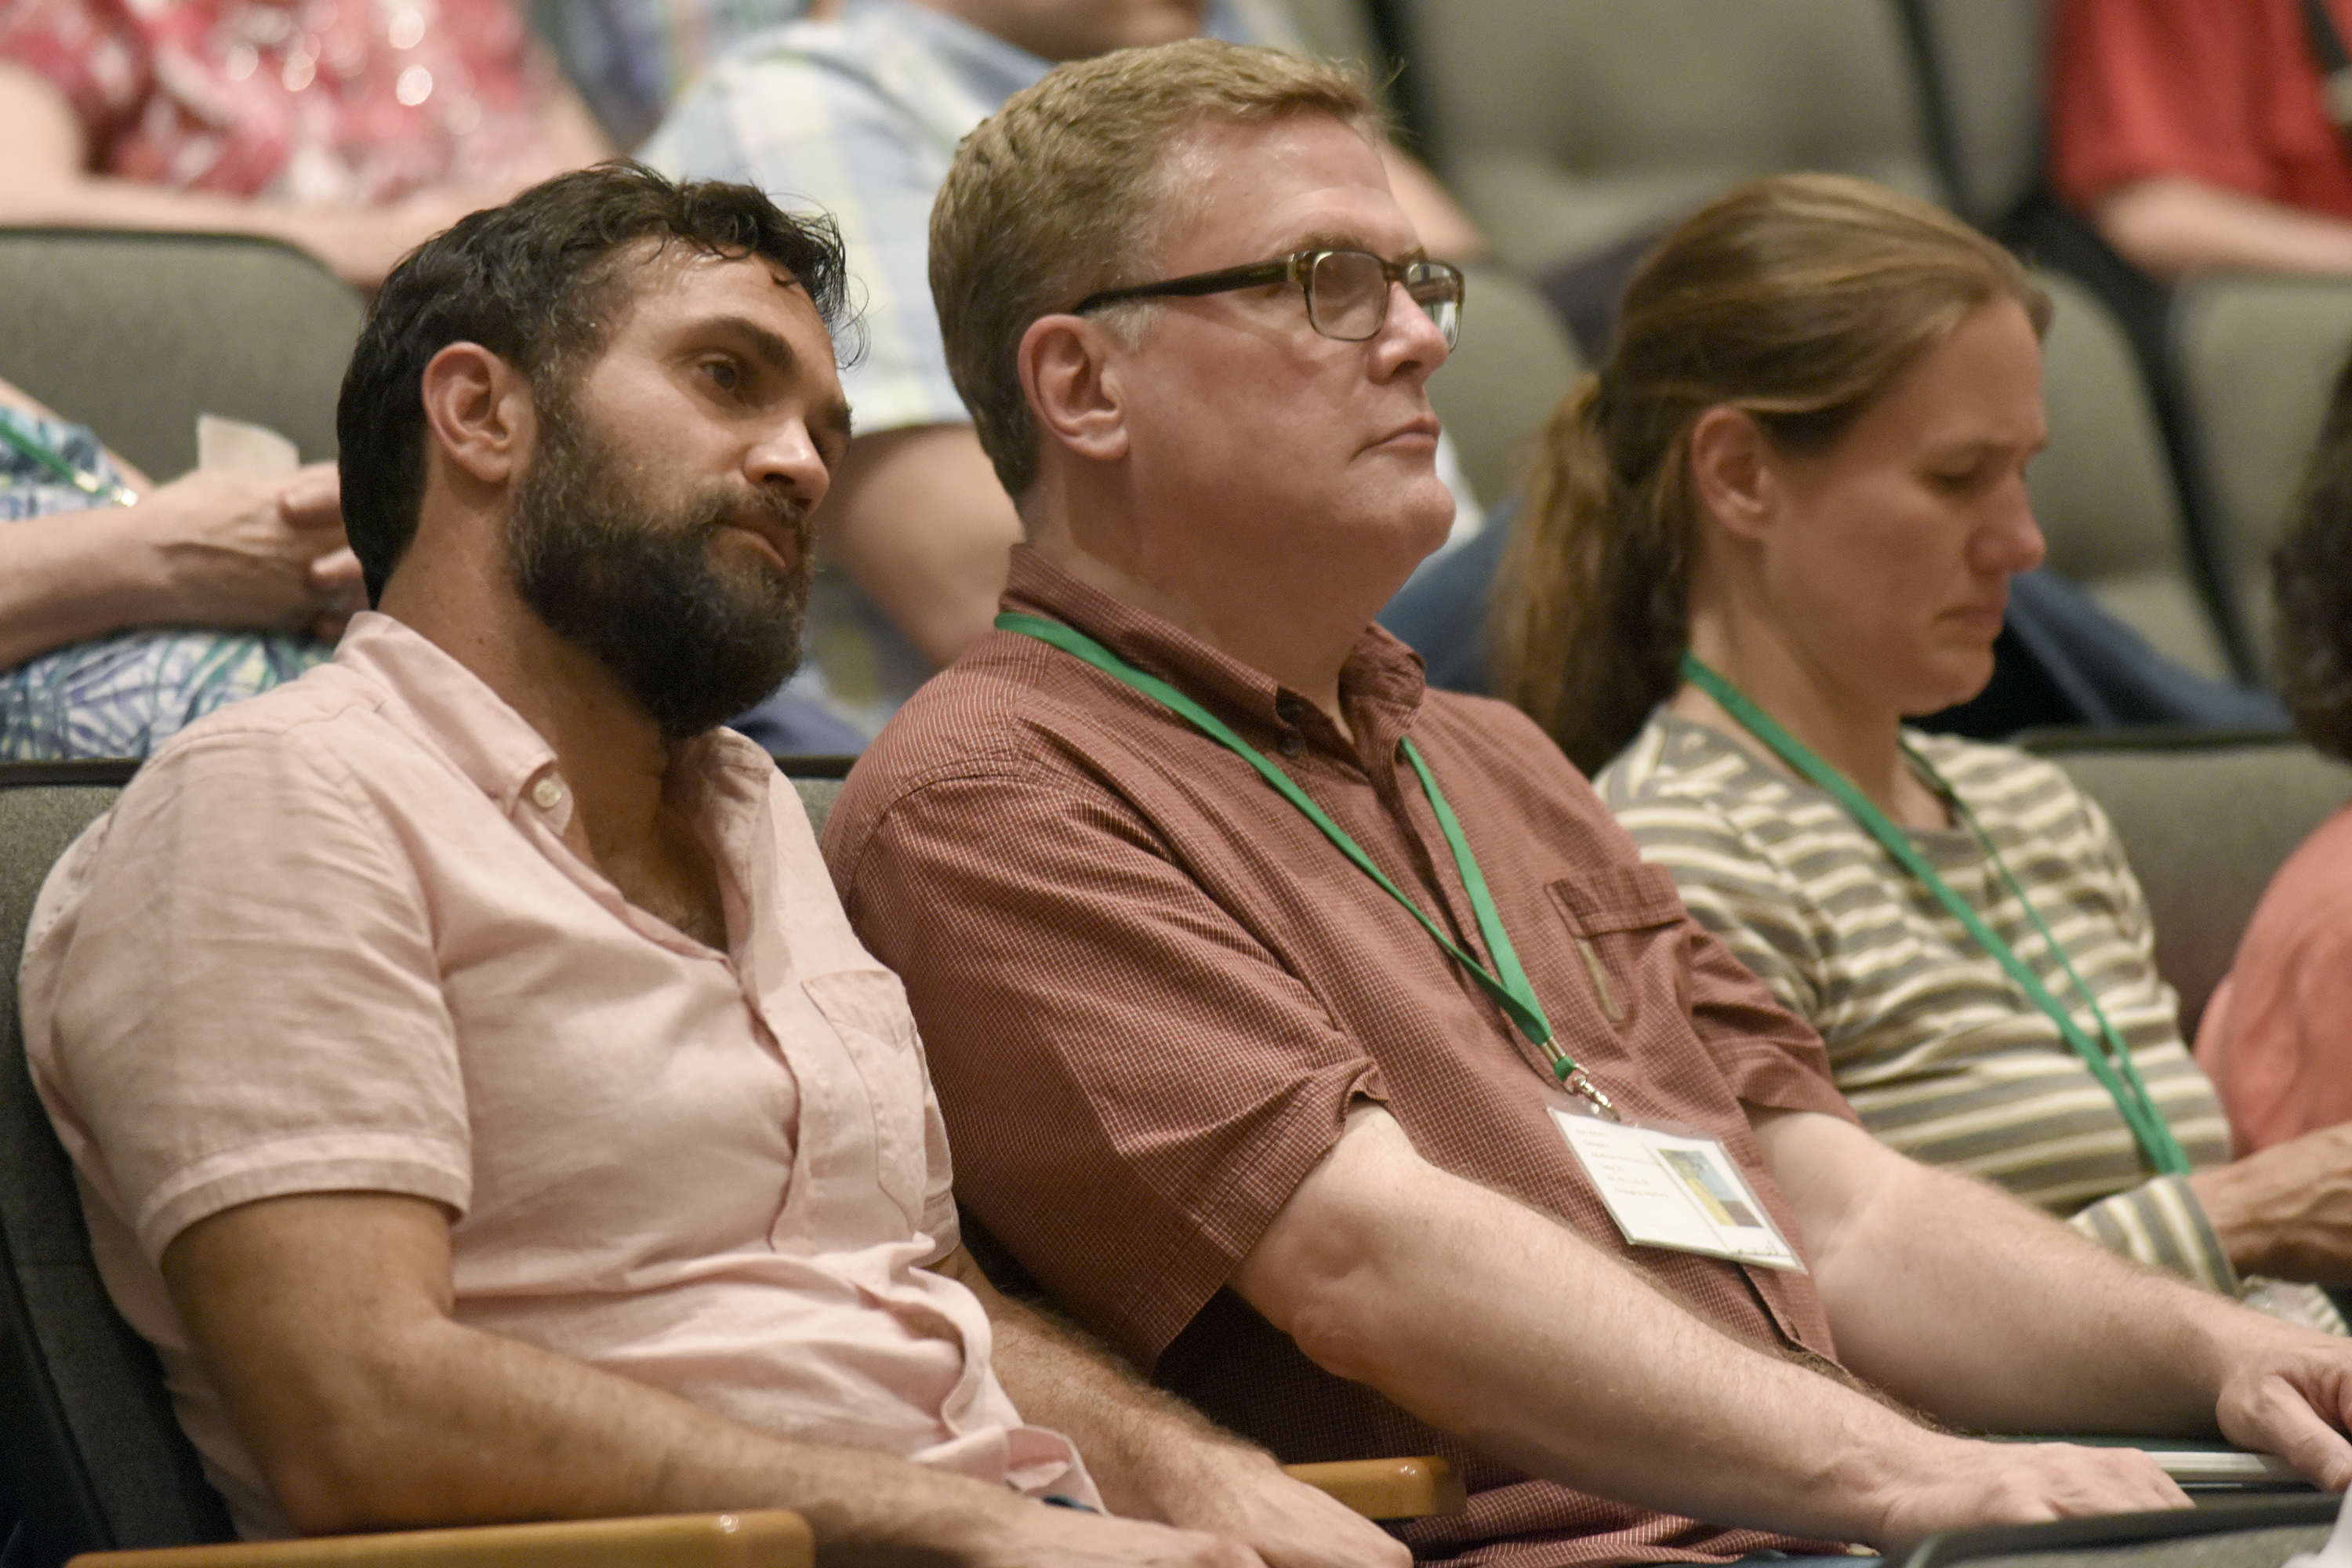 Isaac Villegas (left) and Ron Adams listen to the Friday evening worship at Yoder Recital Hall,  during the Central District Conference, Friday, June 23, 2017, at Bluffton University, Bluffton, OH. Villegas is the pastor at Chapel Hill Mennonite Fellowship and Adams pastors Madison Mennonite Church. Photograph by J. Tyler Klassen